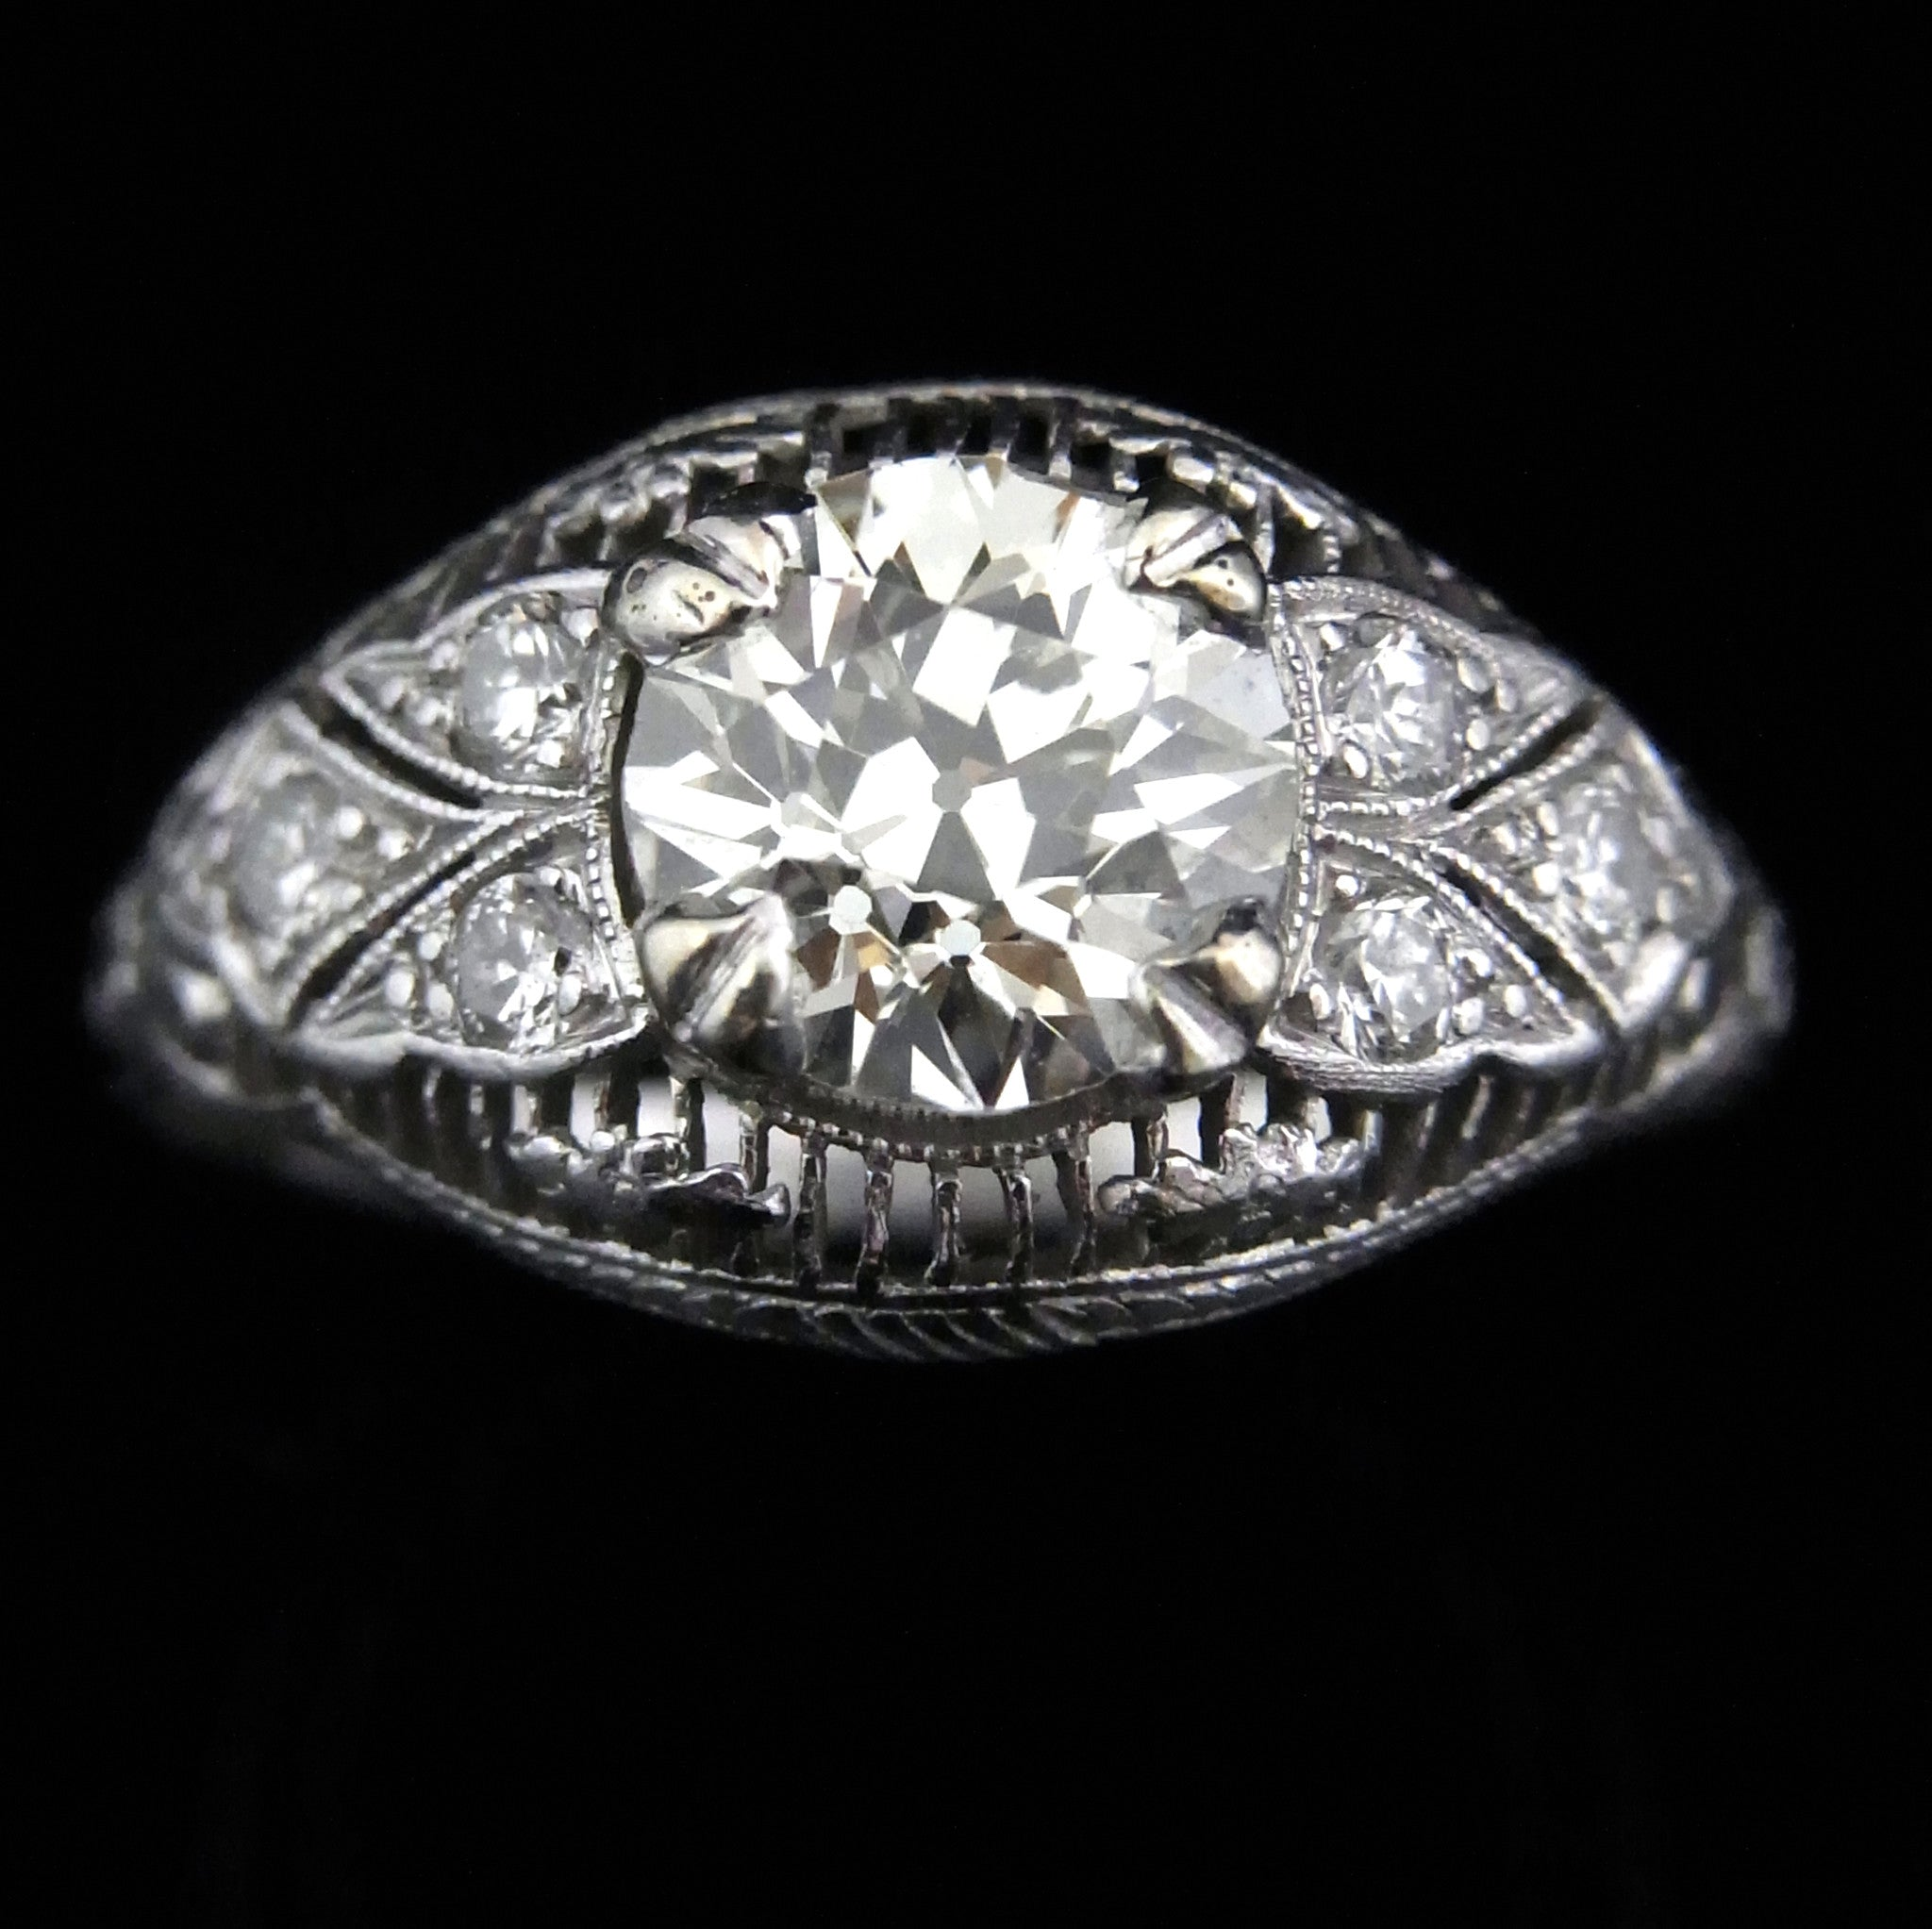 white et scintillation antique products gold ring diamond art moi deco tdw toi